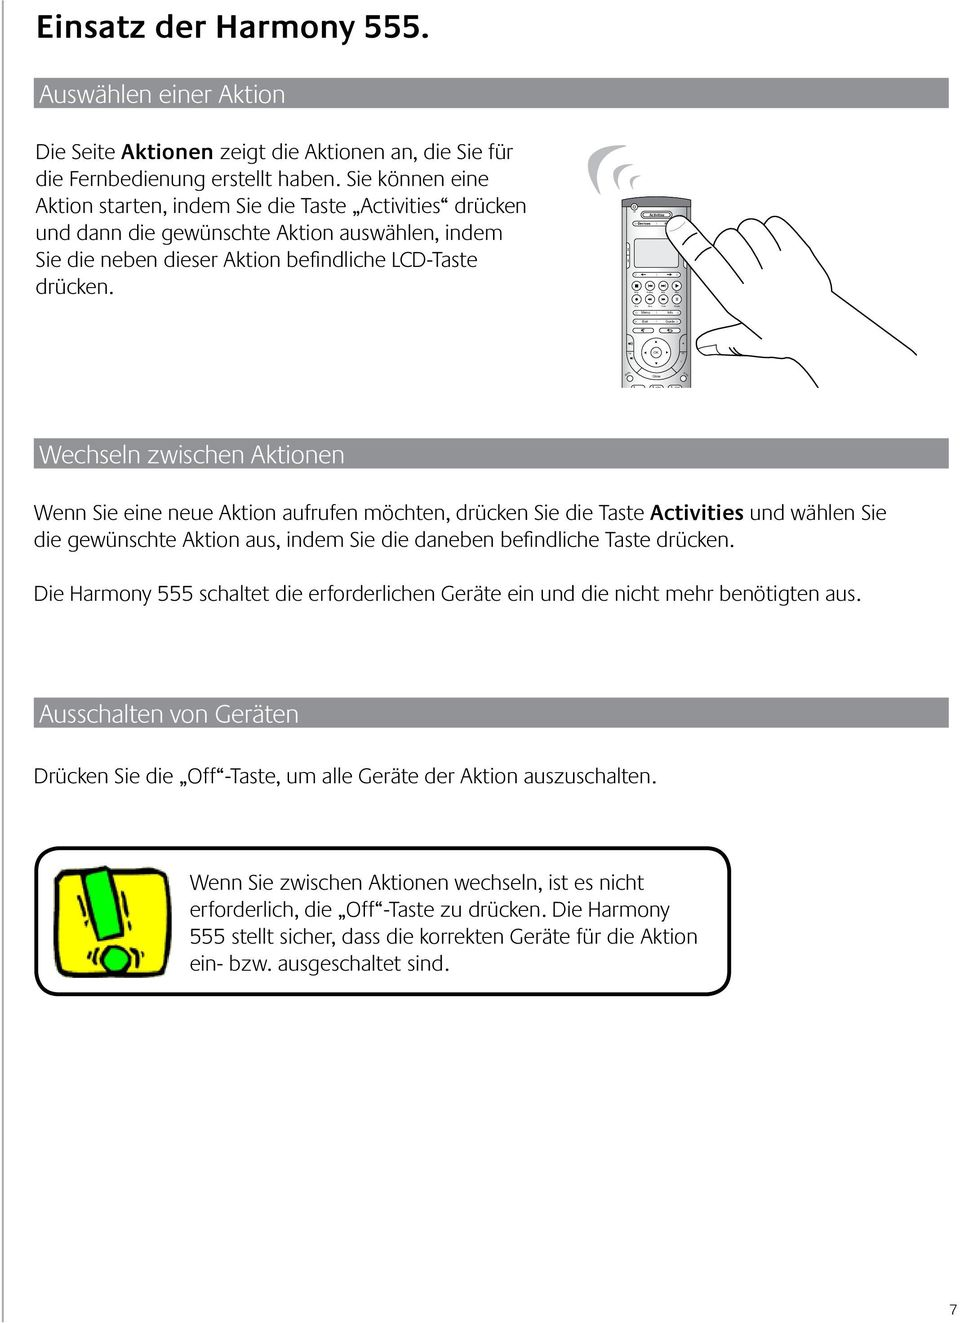 Devices Activities Help Menu Exit Info Guide + OK - Mute Glow Prev 1 2 abc 3 def 4 ghi 5 jkl 6 mno 7 pqrs 8 tuv 9 wxyz * clear 0 enter Wechseln zwischen Aktionen Wenn Sie eine neue Aktion aufrufen